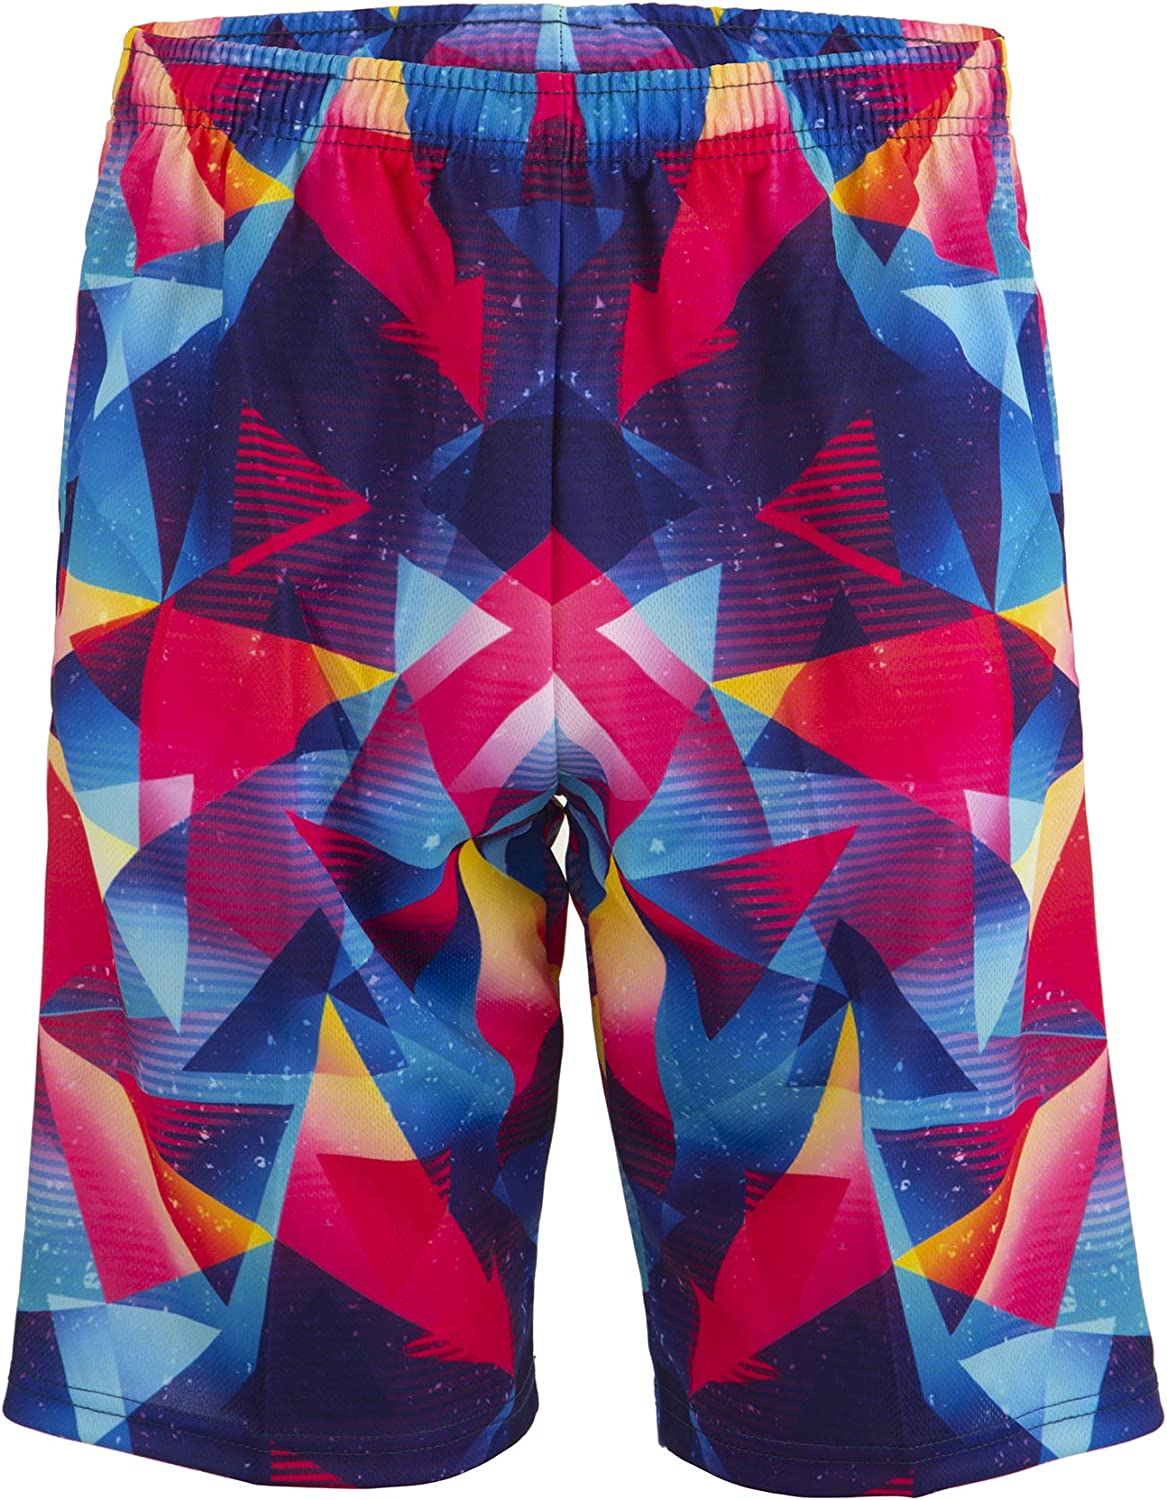 Lacrosse Shorts With Bright Triangles, Knee Length and Deep Pockets (youth